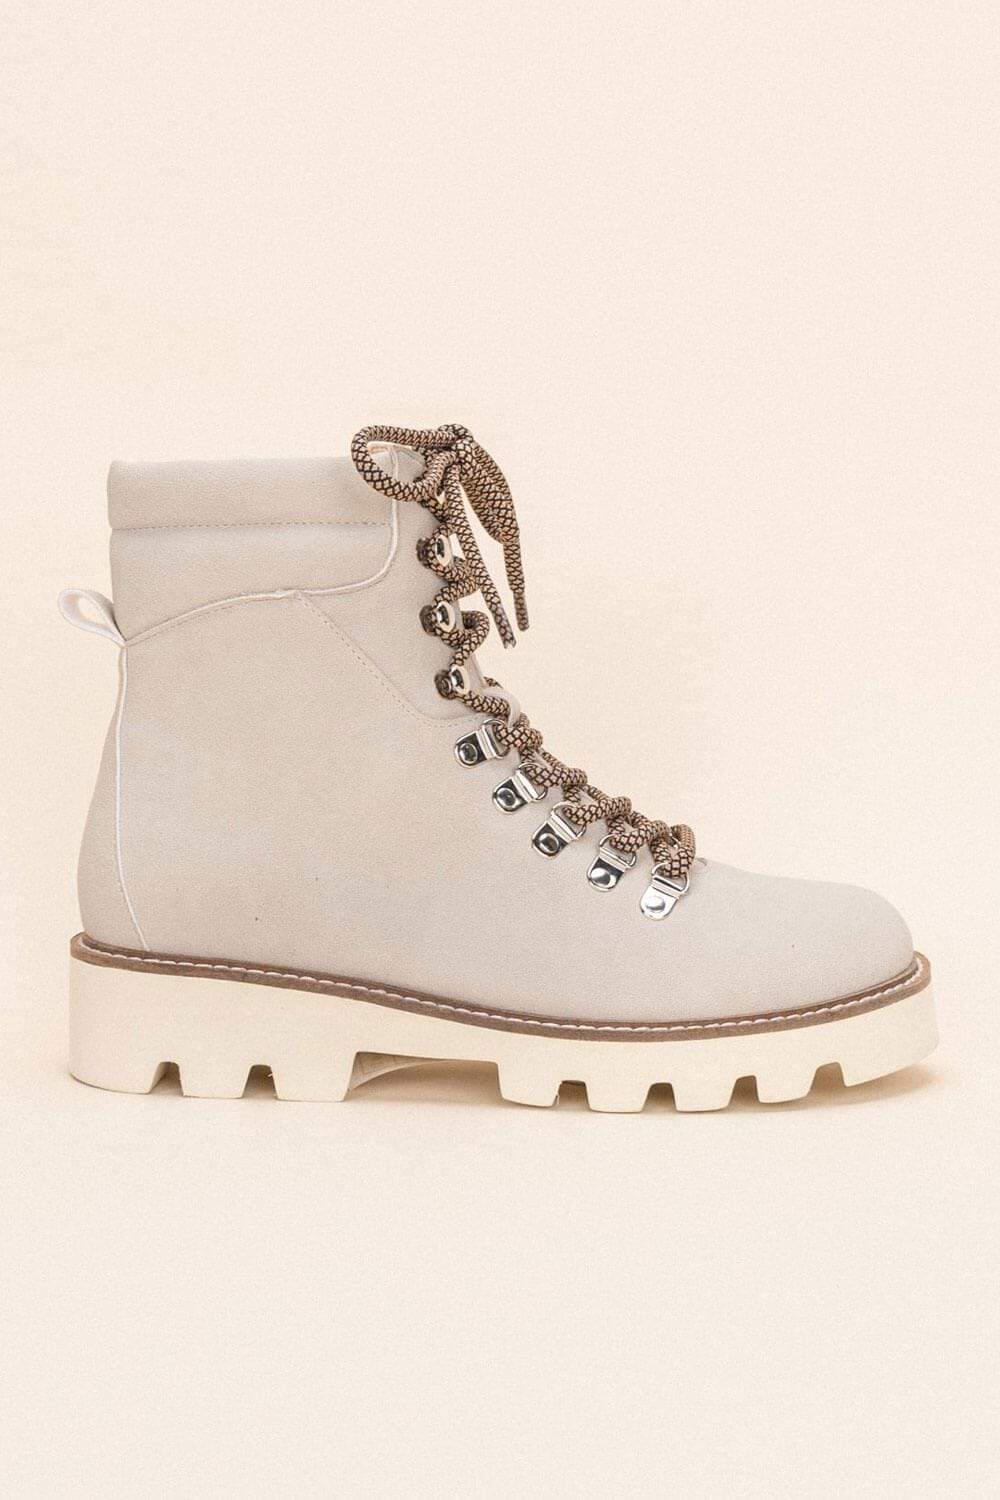 Arlene High-Top Lace Up Boot lt grey side MILK MONEY